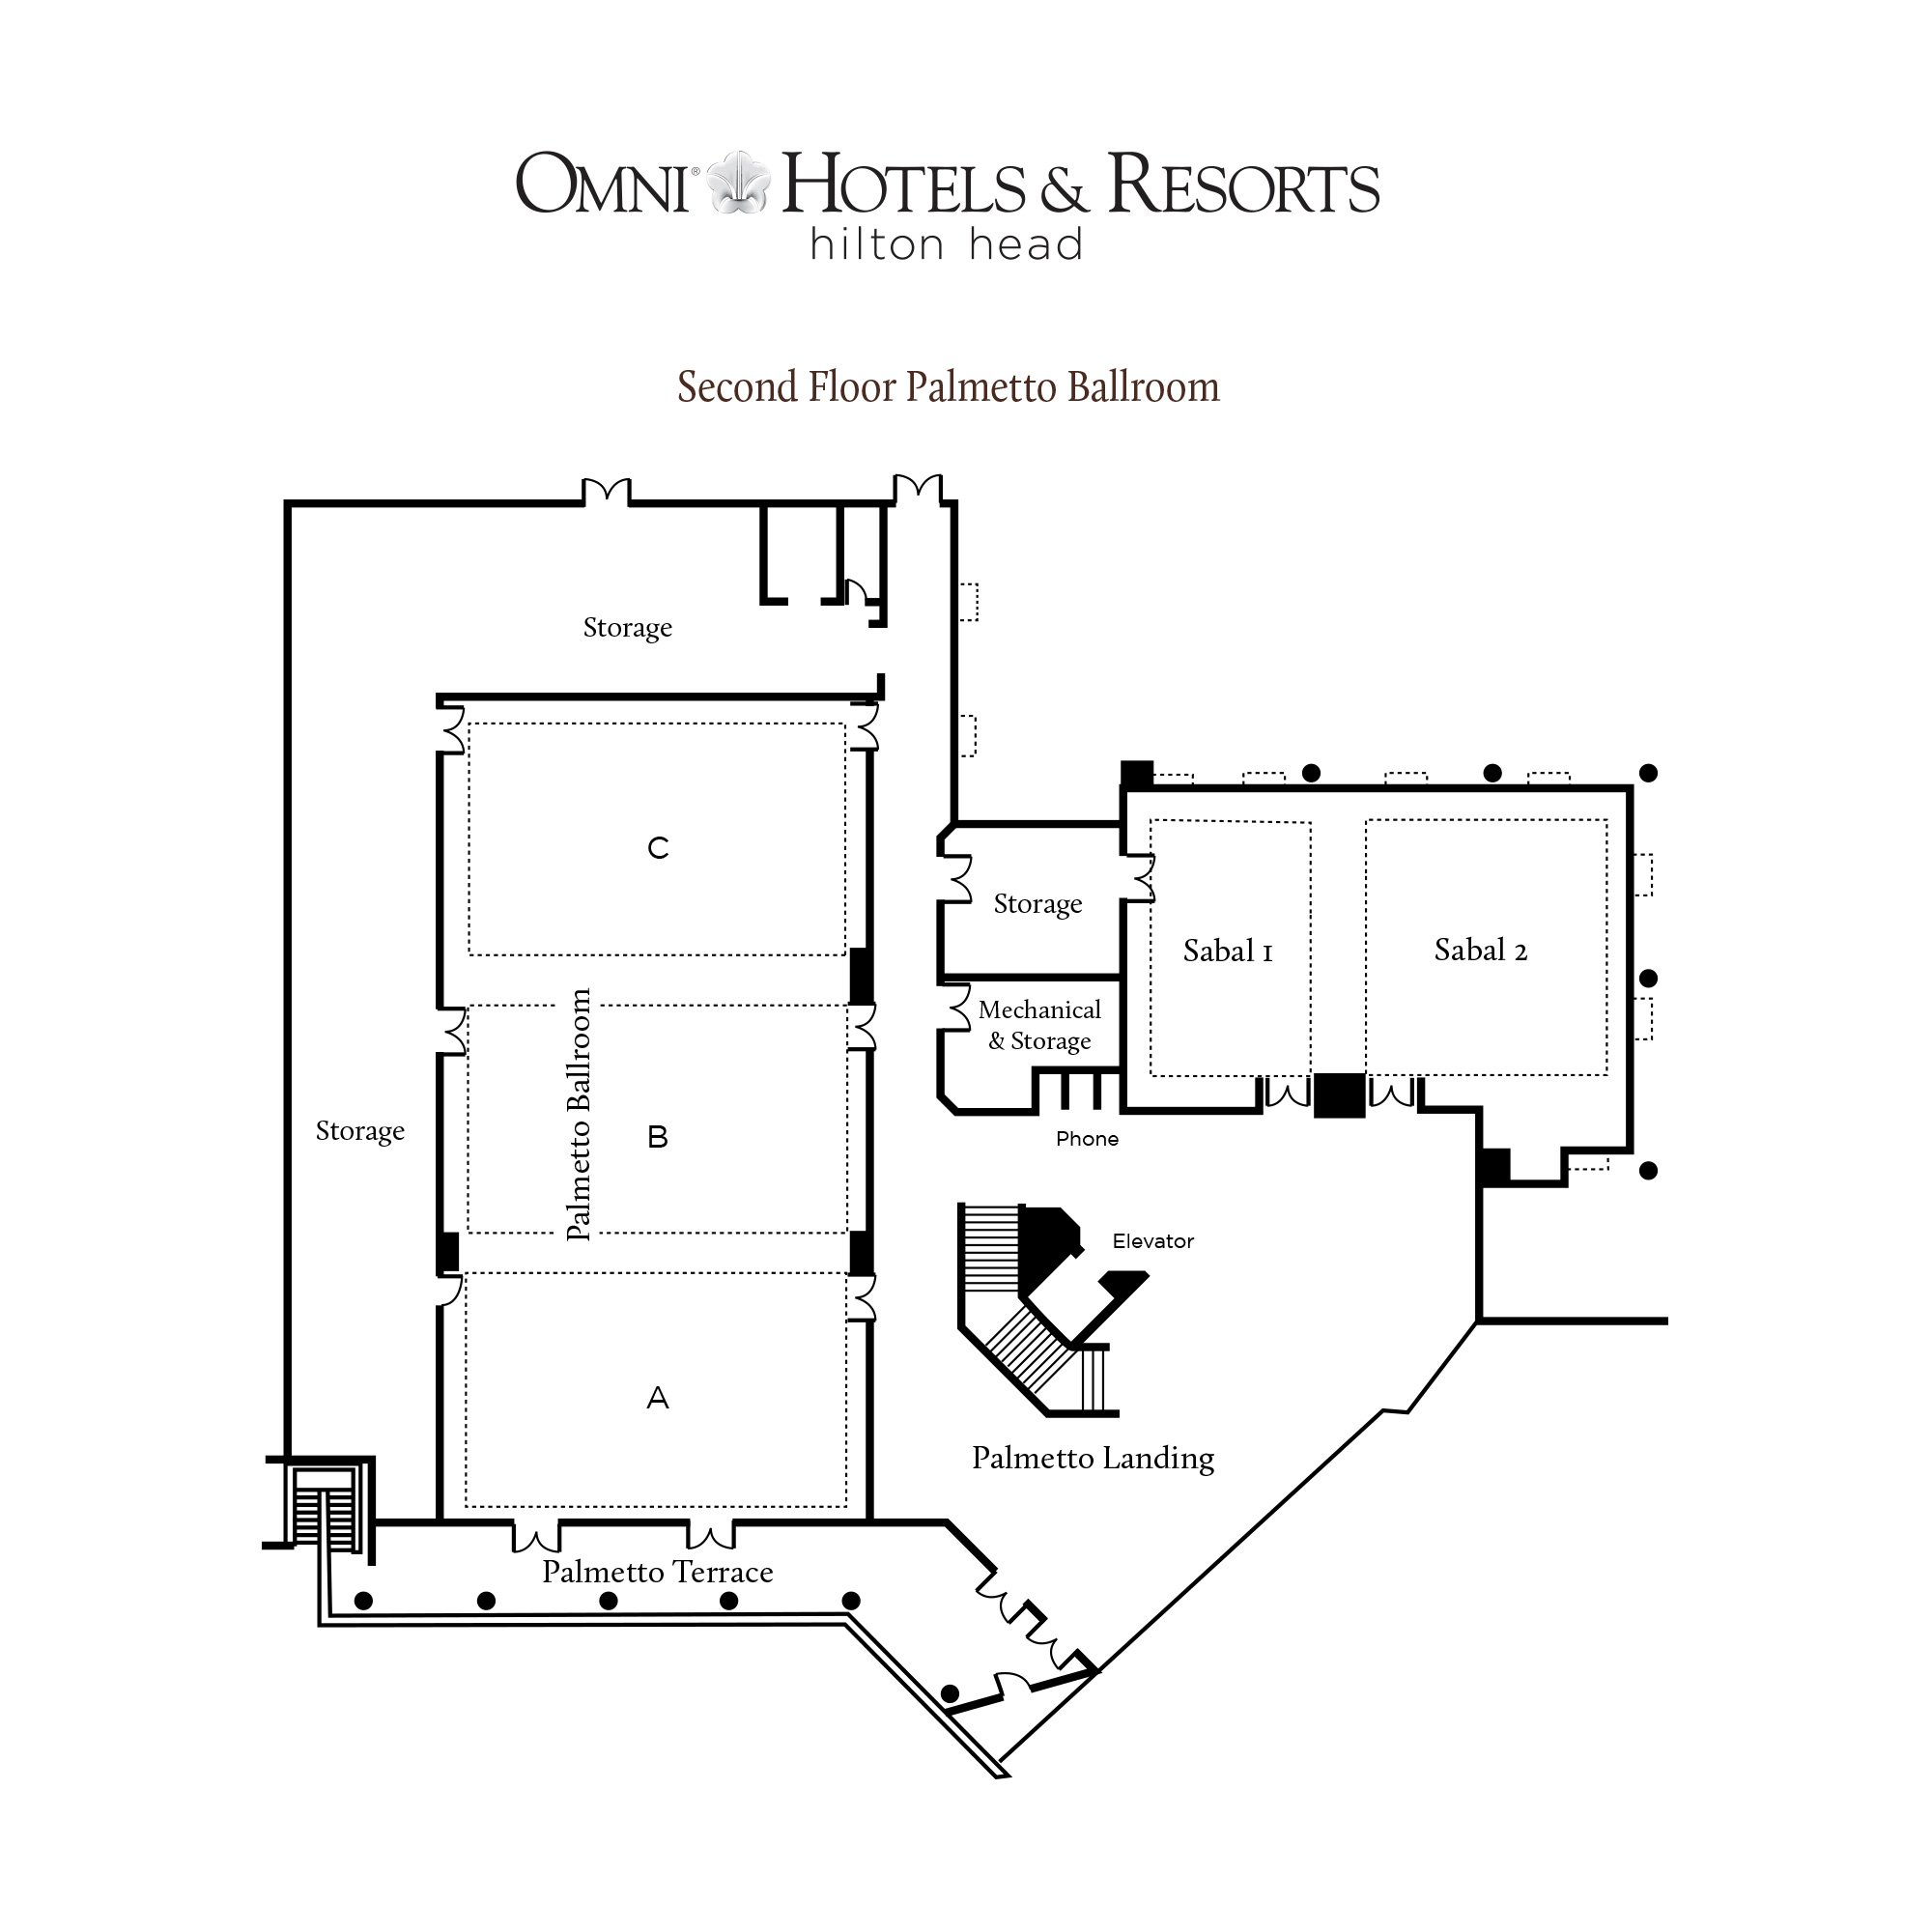 Omni Hotels and Resort floor plans